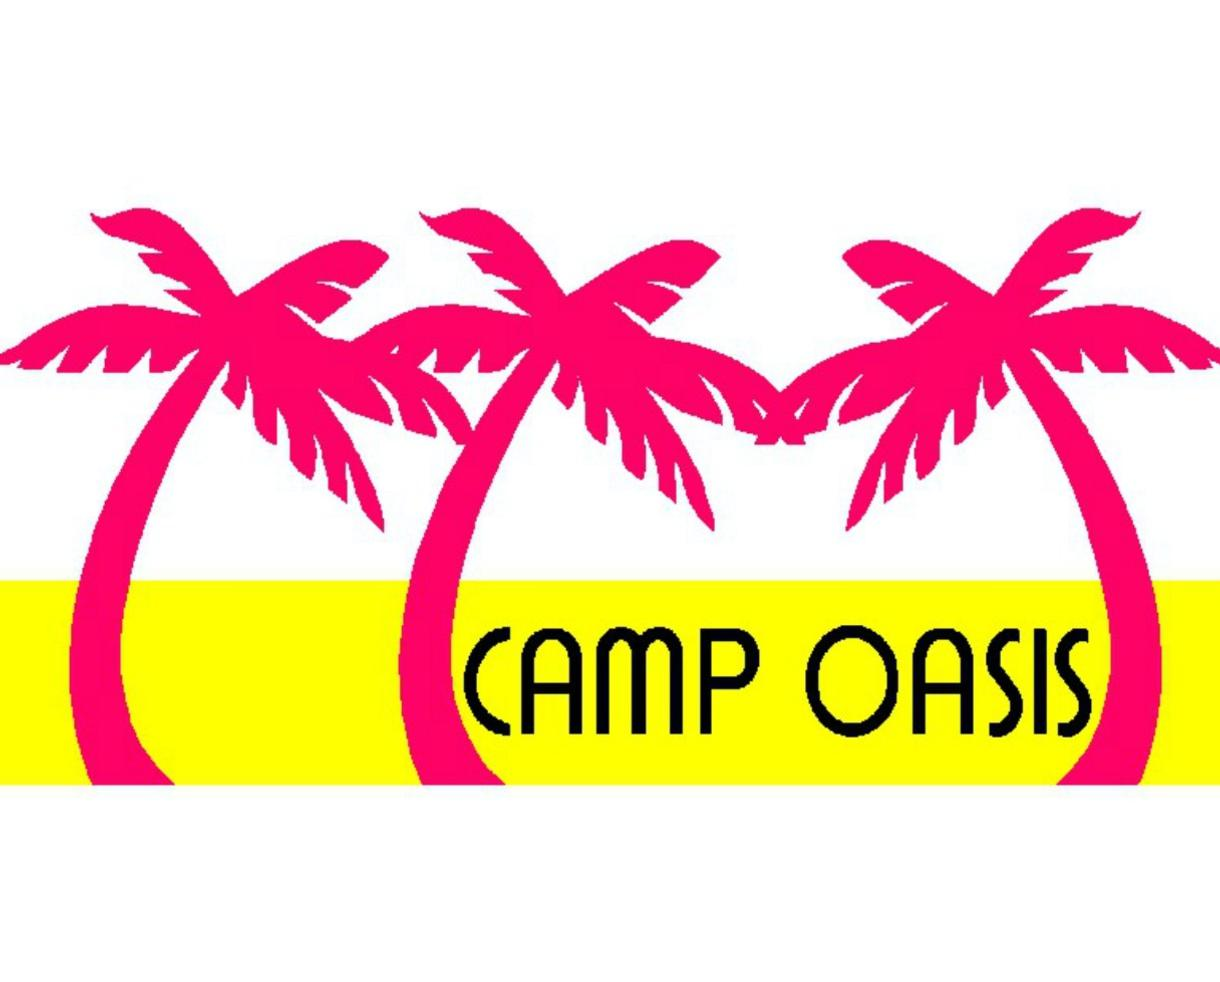 $400+ for 2-Week Day Camp at Camp Oasis for Ages 4-13 - Daily Swimming, Sports, Arts & Crafts and More! - Columbia ($125 Off!)